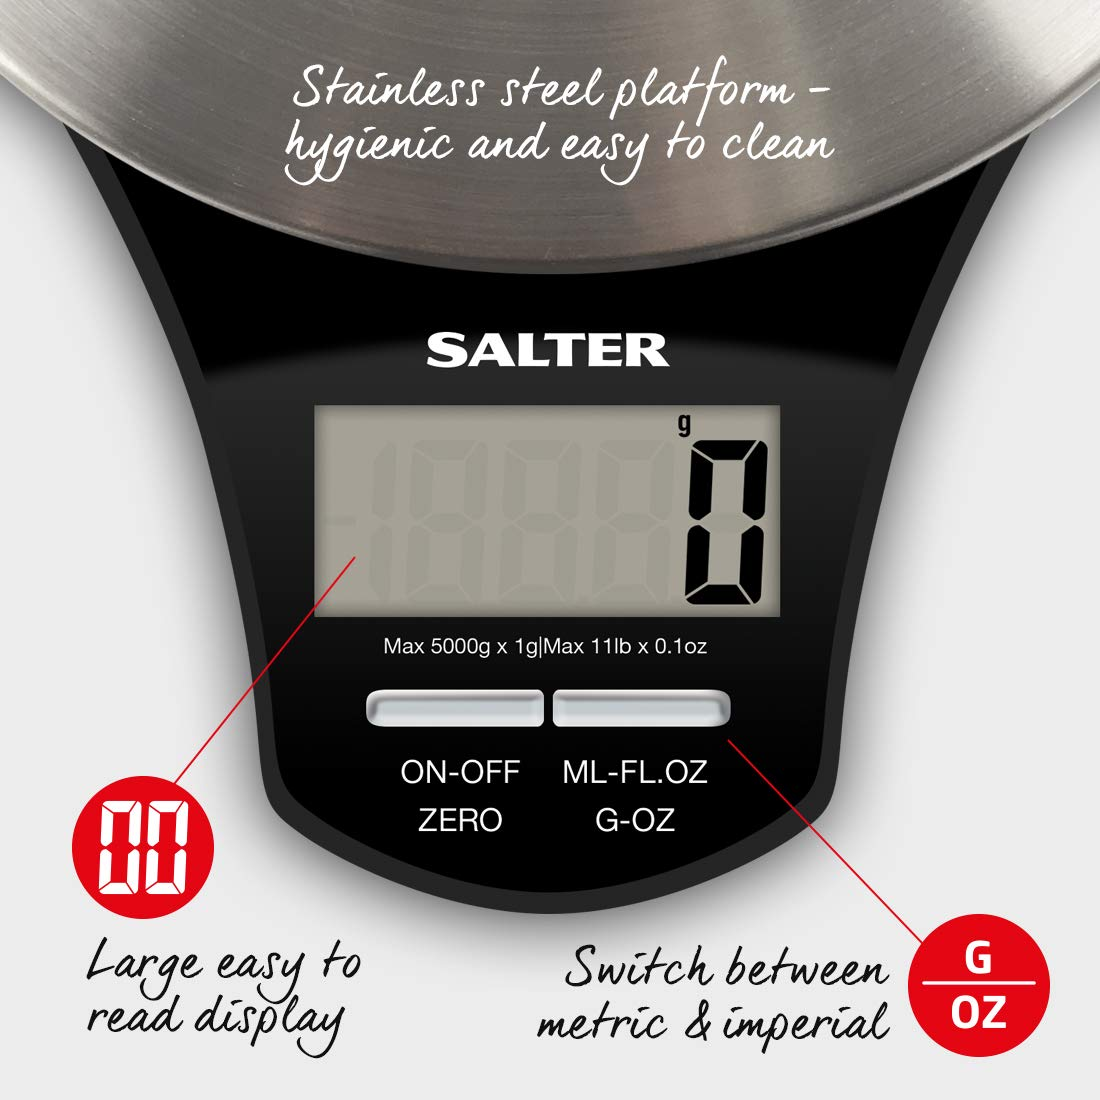 Salter Stainless Steel Digital Kitchen Weighing Scales - Electronic Cooking Scale Appliance for Home, Weigh Food with Accurate Precision up to 5kg, Plus Liquids in ml and fl. Oz. 15 Year Guarantee by Birch Hill (Image #4)